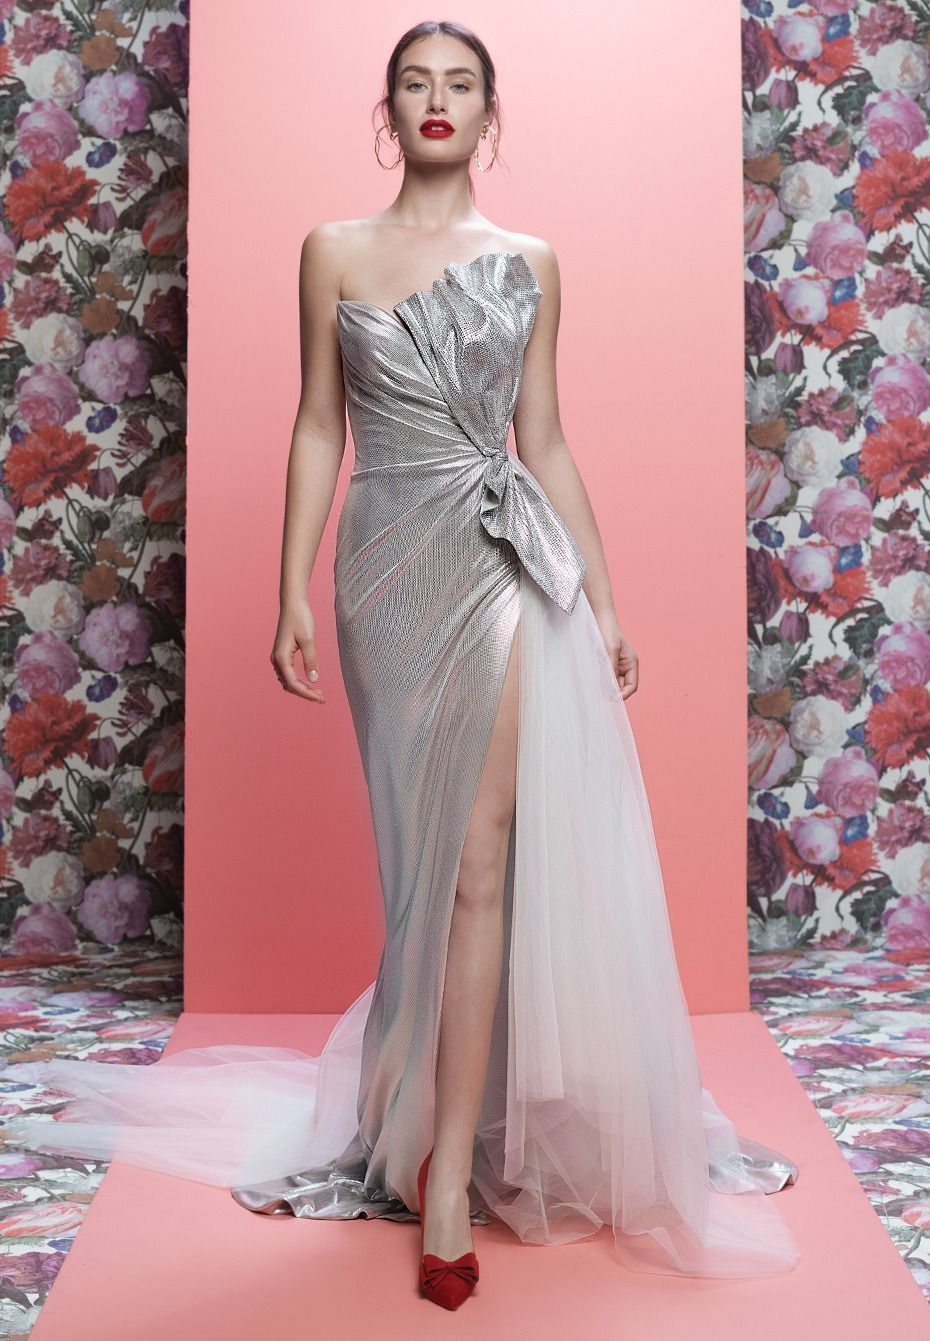 Glam Wedding Dresses From Galia Lahav And The Cakes That Match Them ...